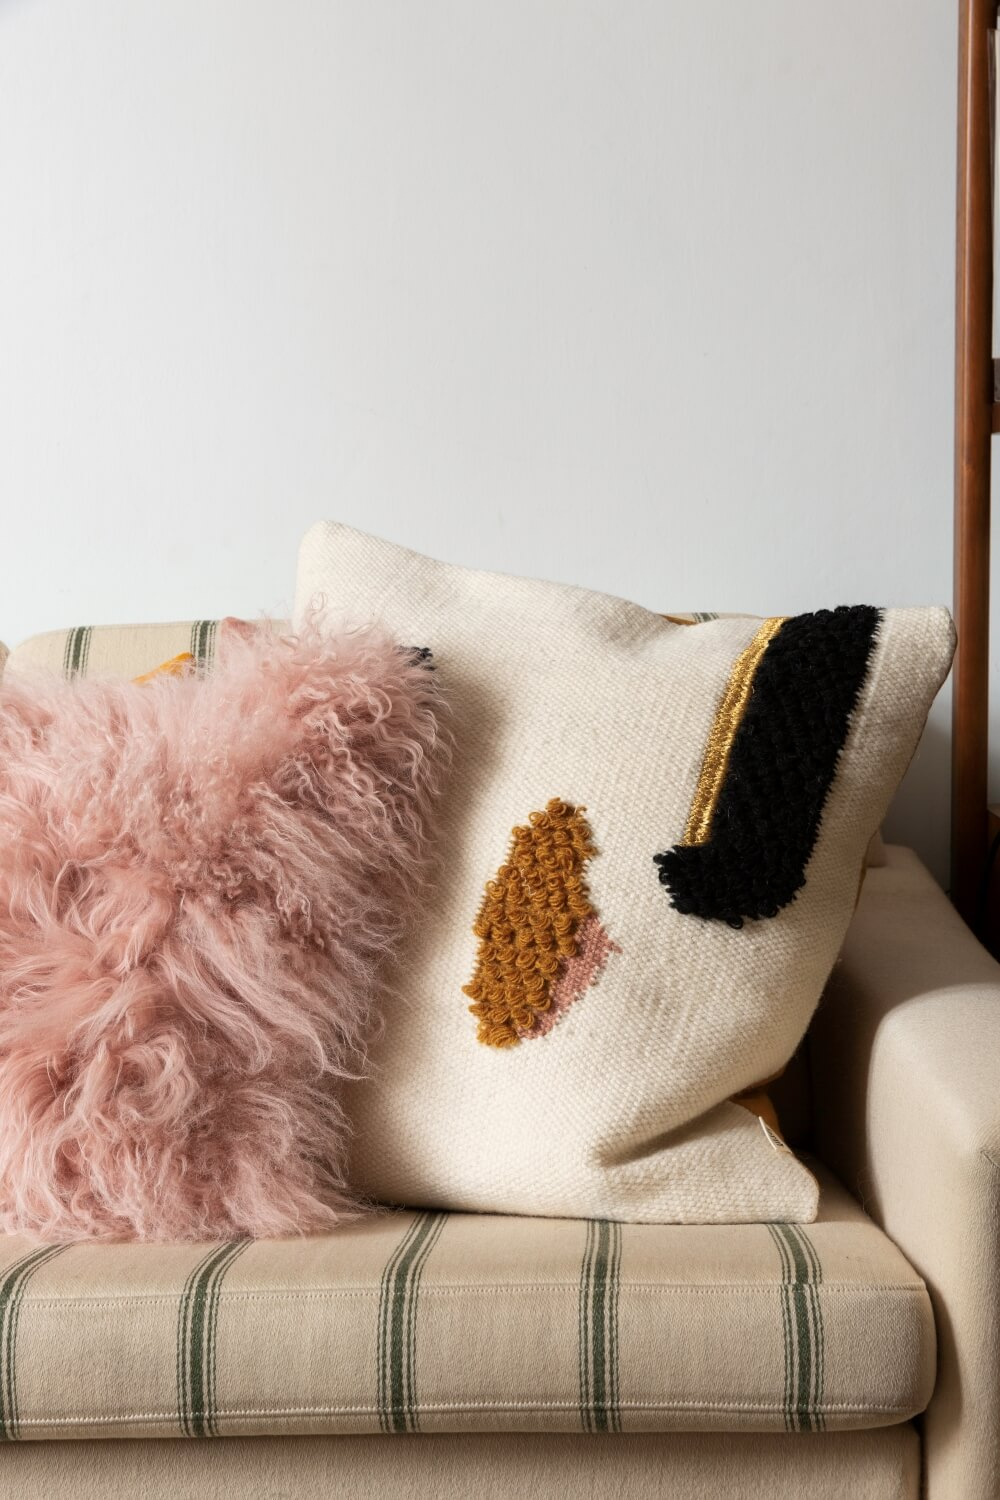 Close up of pillows on striped vintage sofa